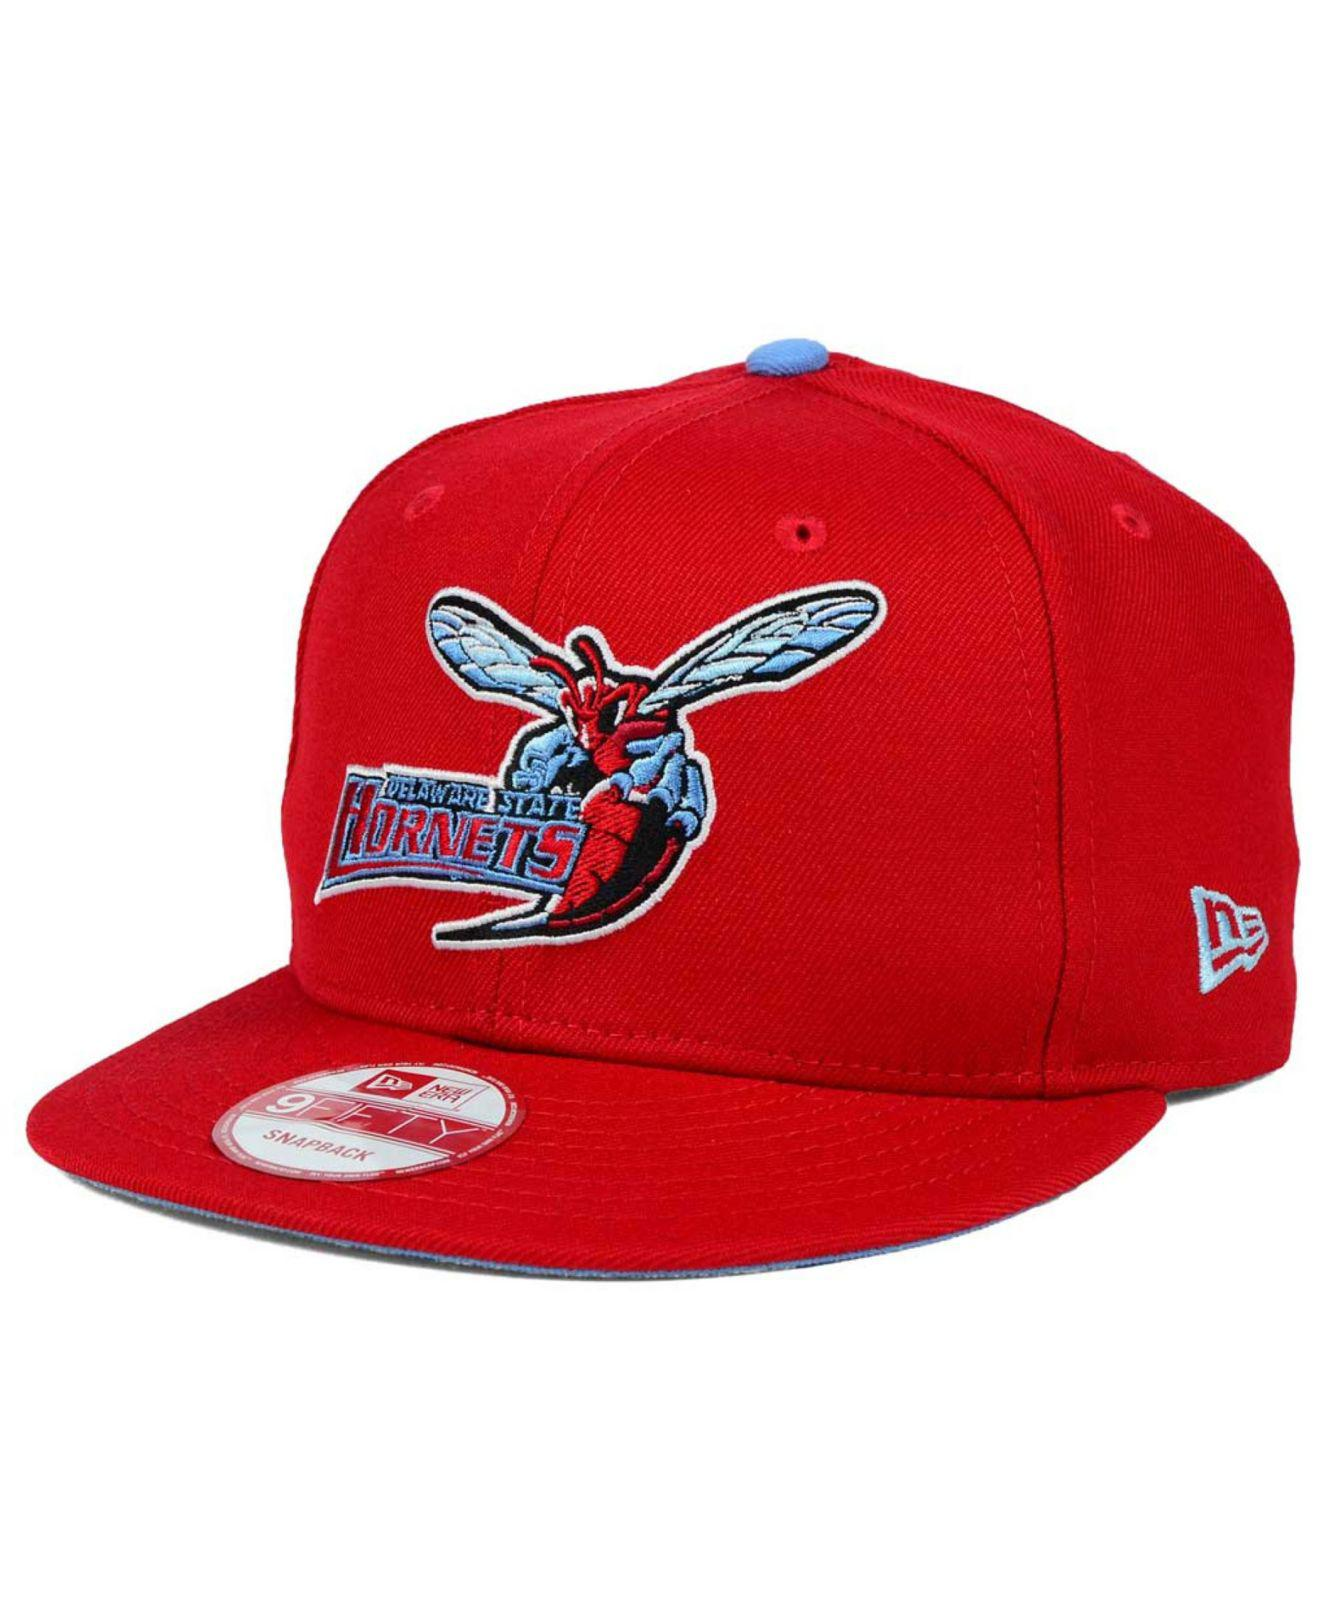 uk availability 0bf6a acb8a KTZ. Men s Red Delaware State Hornets Core 9fifty Snapback Cap